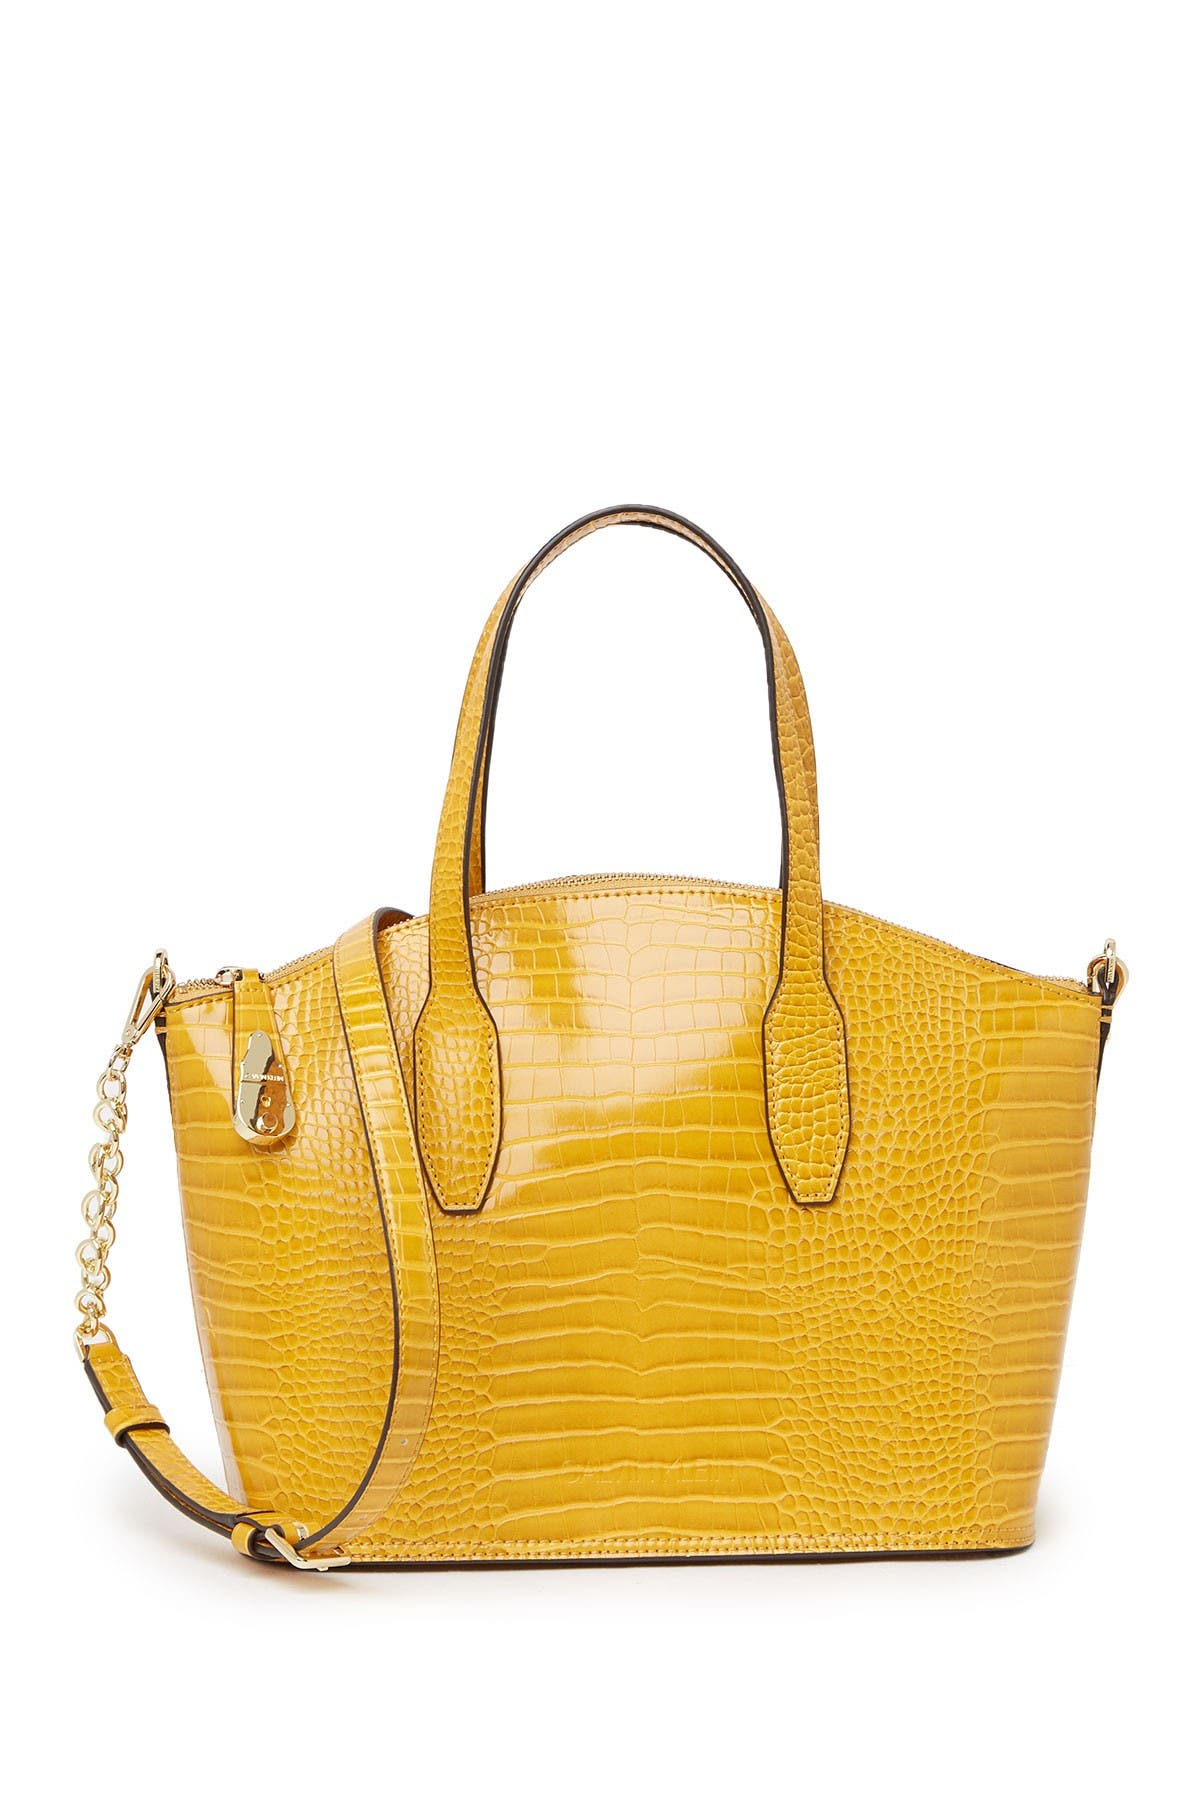 Image of Calvin Klein Croc Embossed Statement Series Lock Daytona Satchel